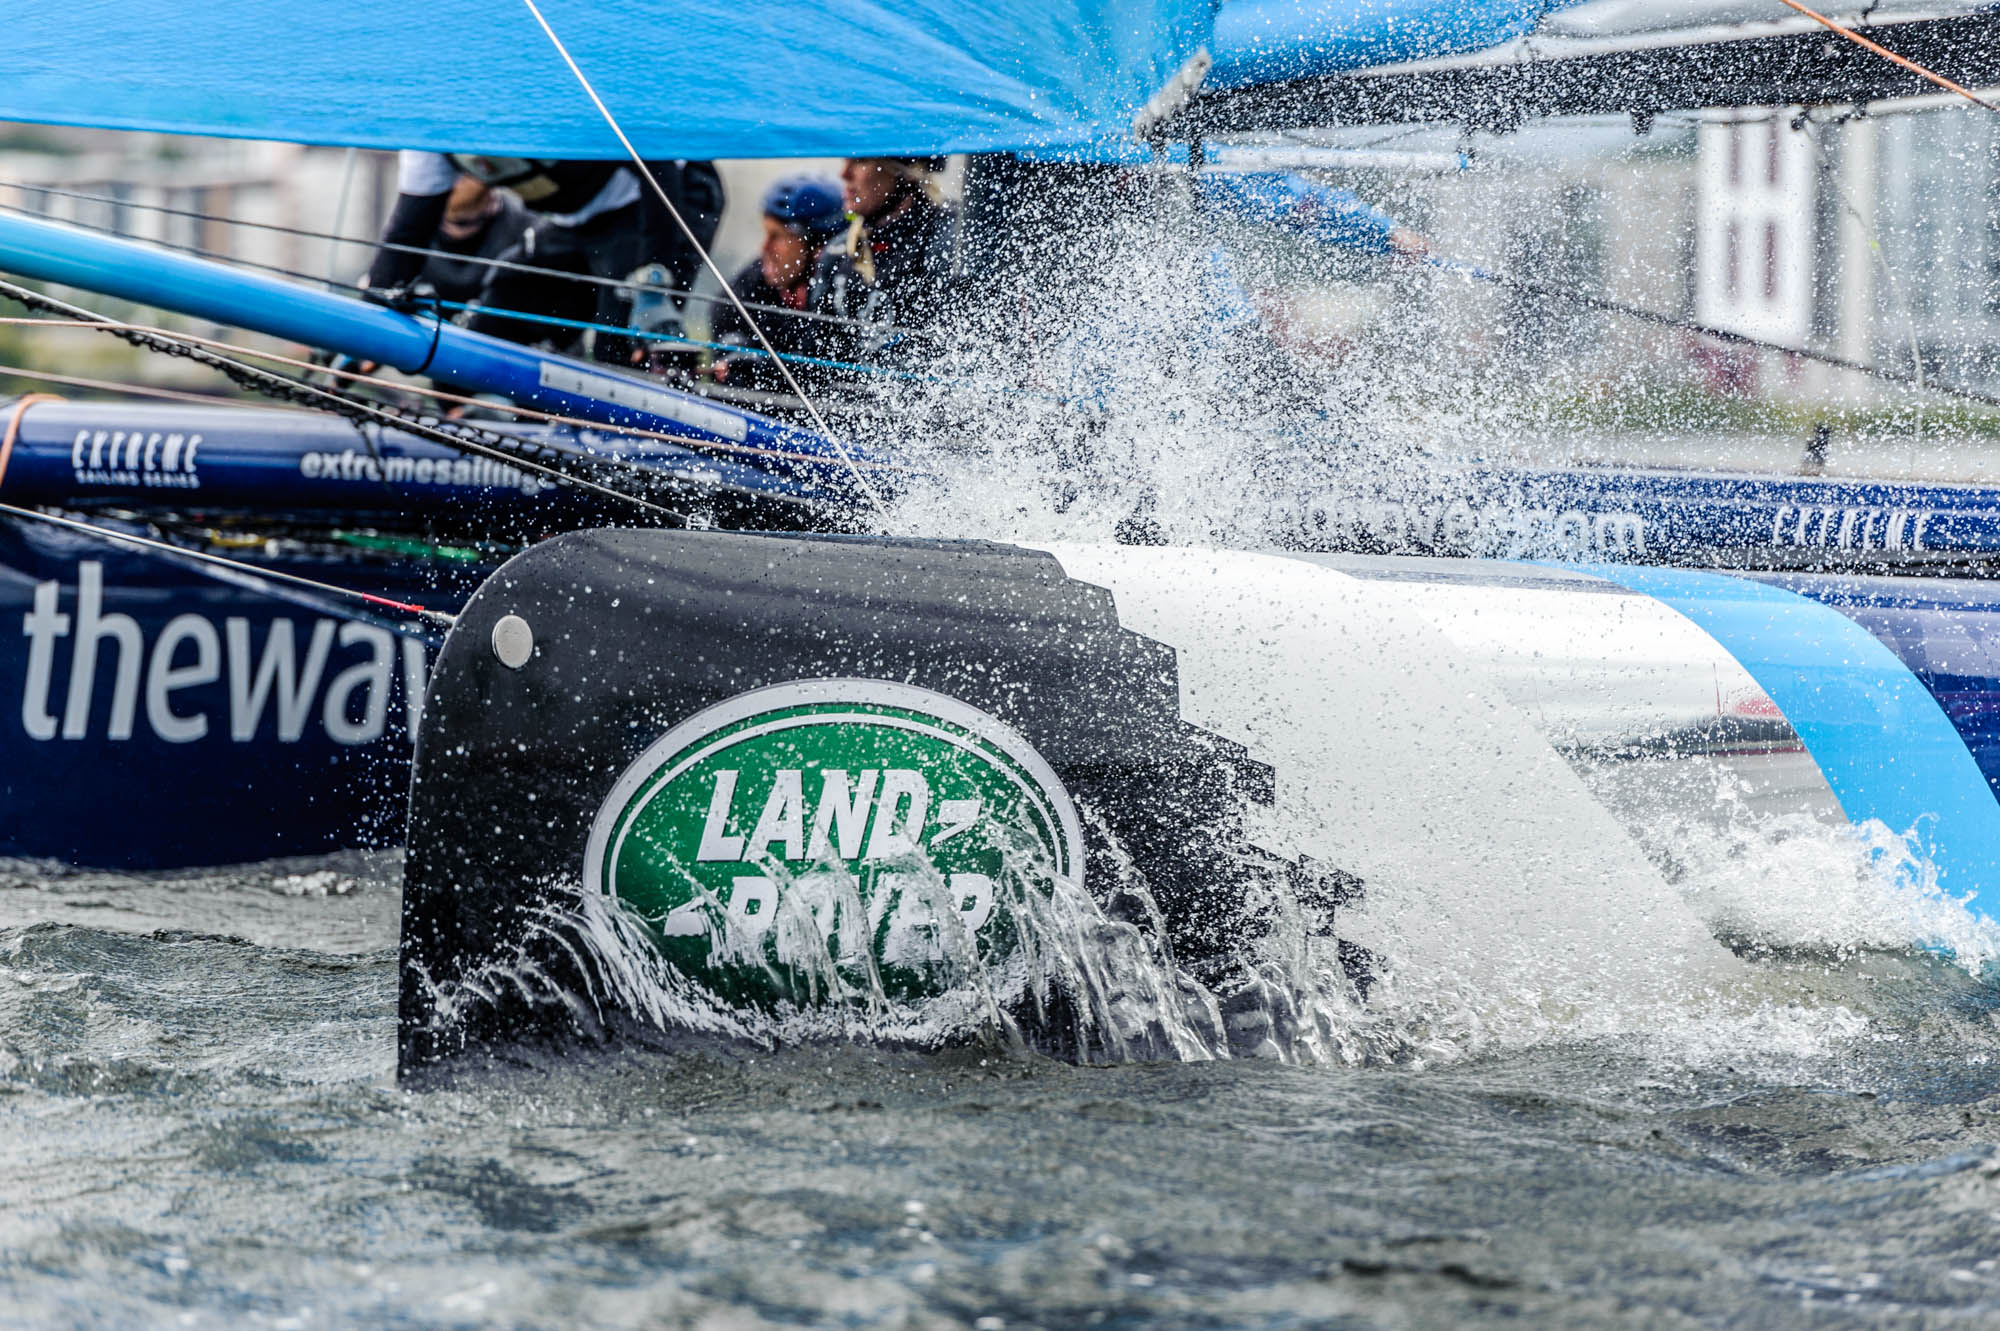 A photo of a super series catamaran kicking up spray in Cardiff